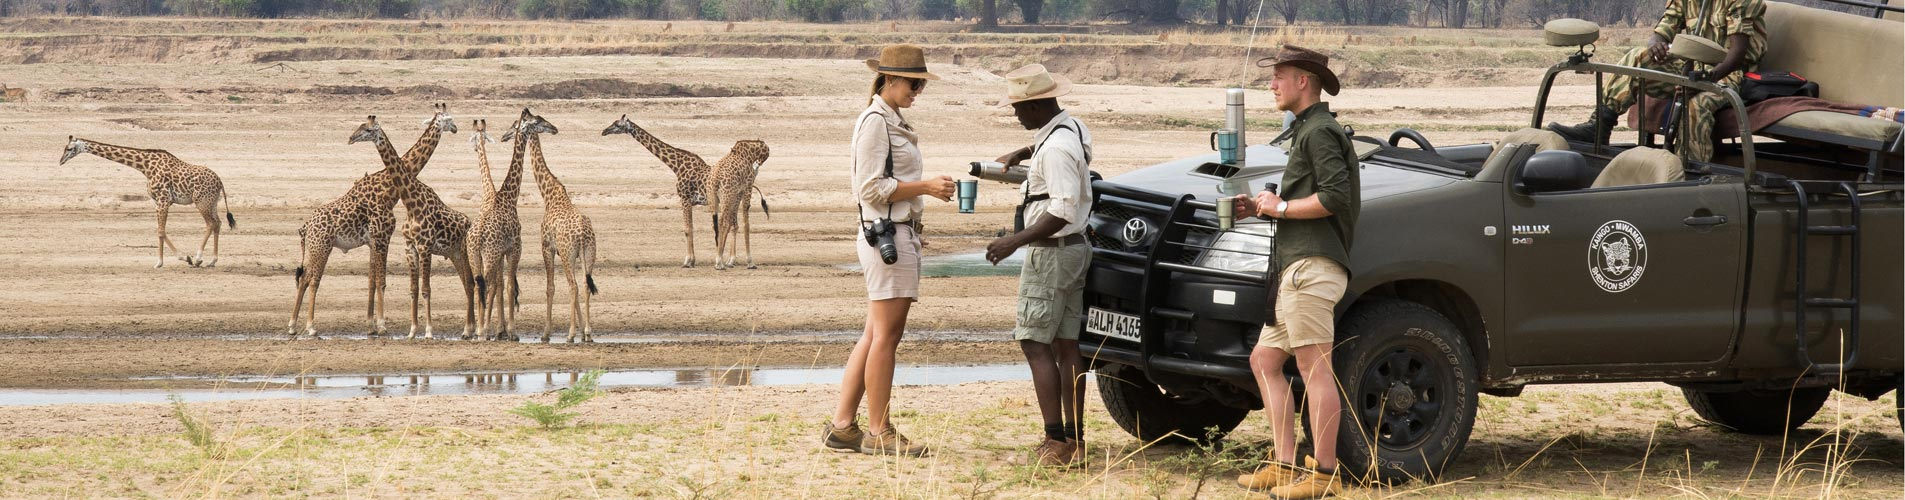 Tea With Giraffes on Zambia Safari